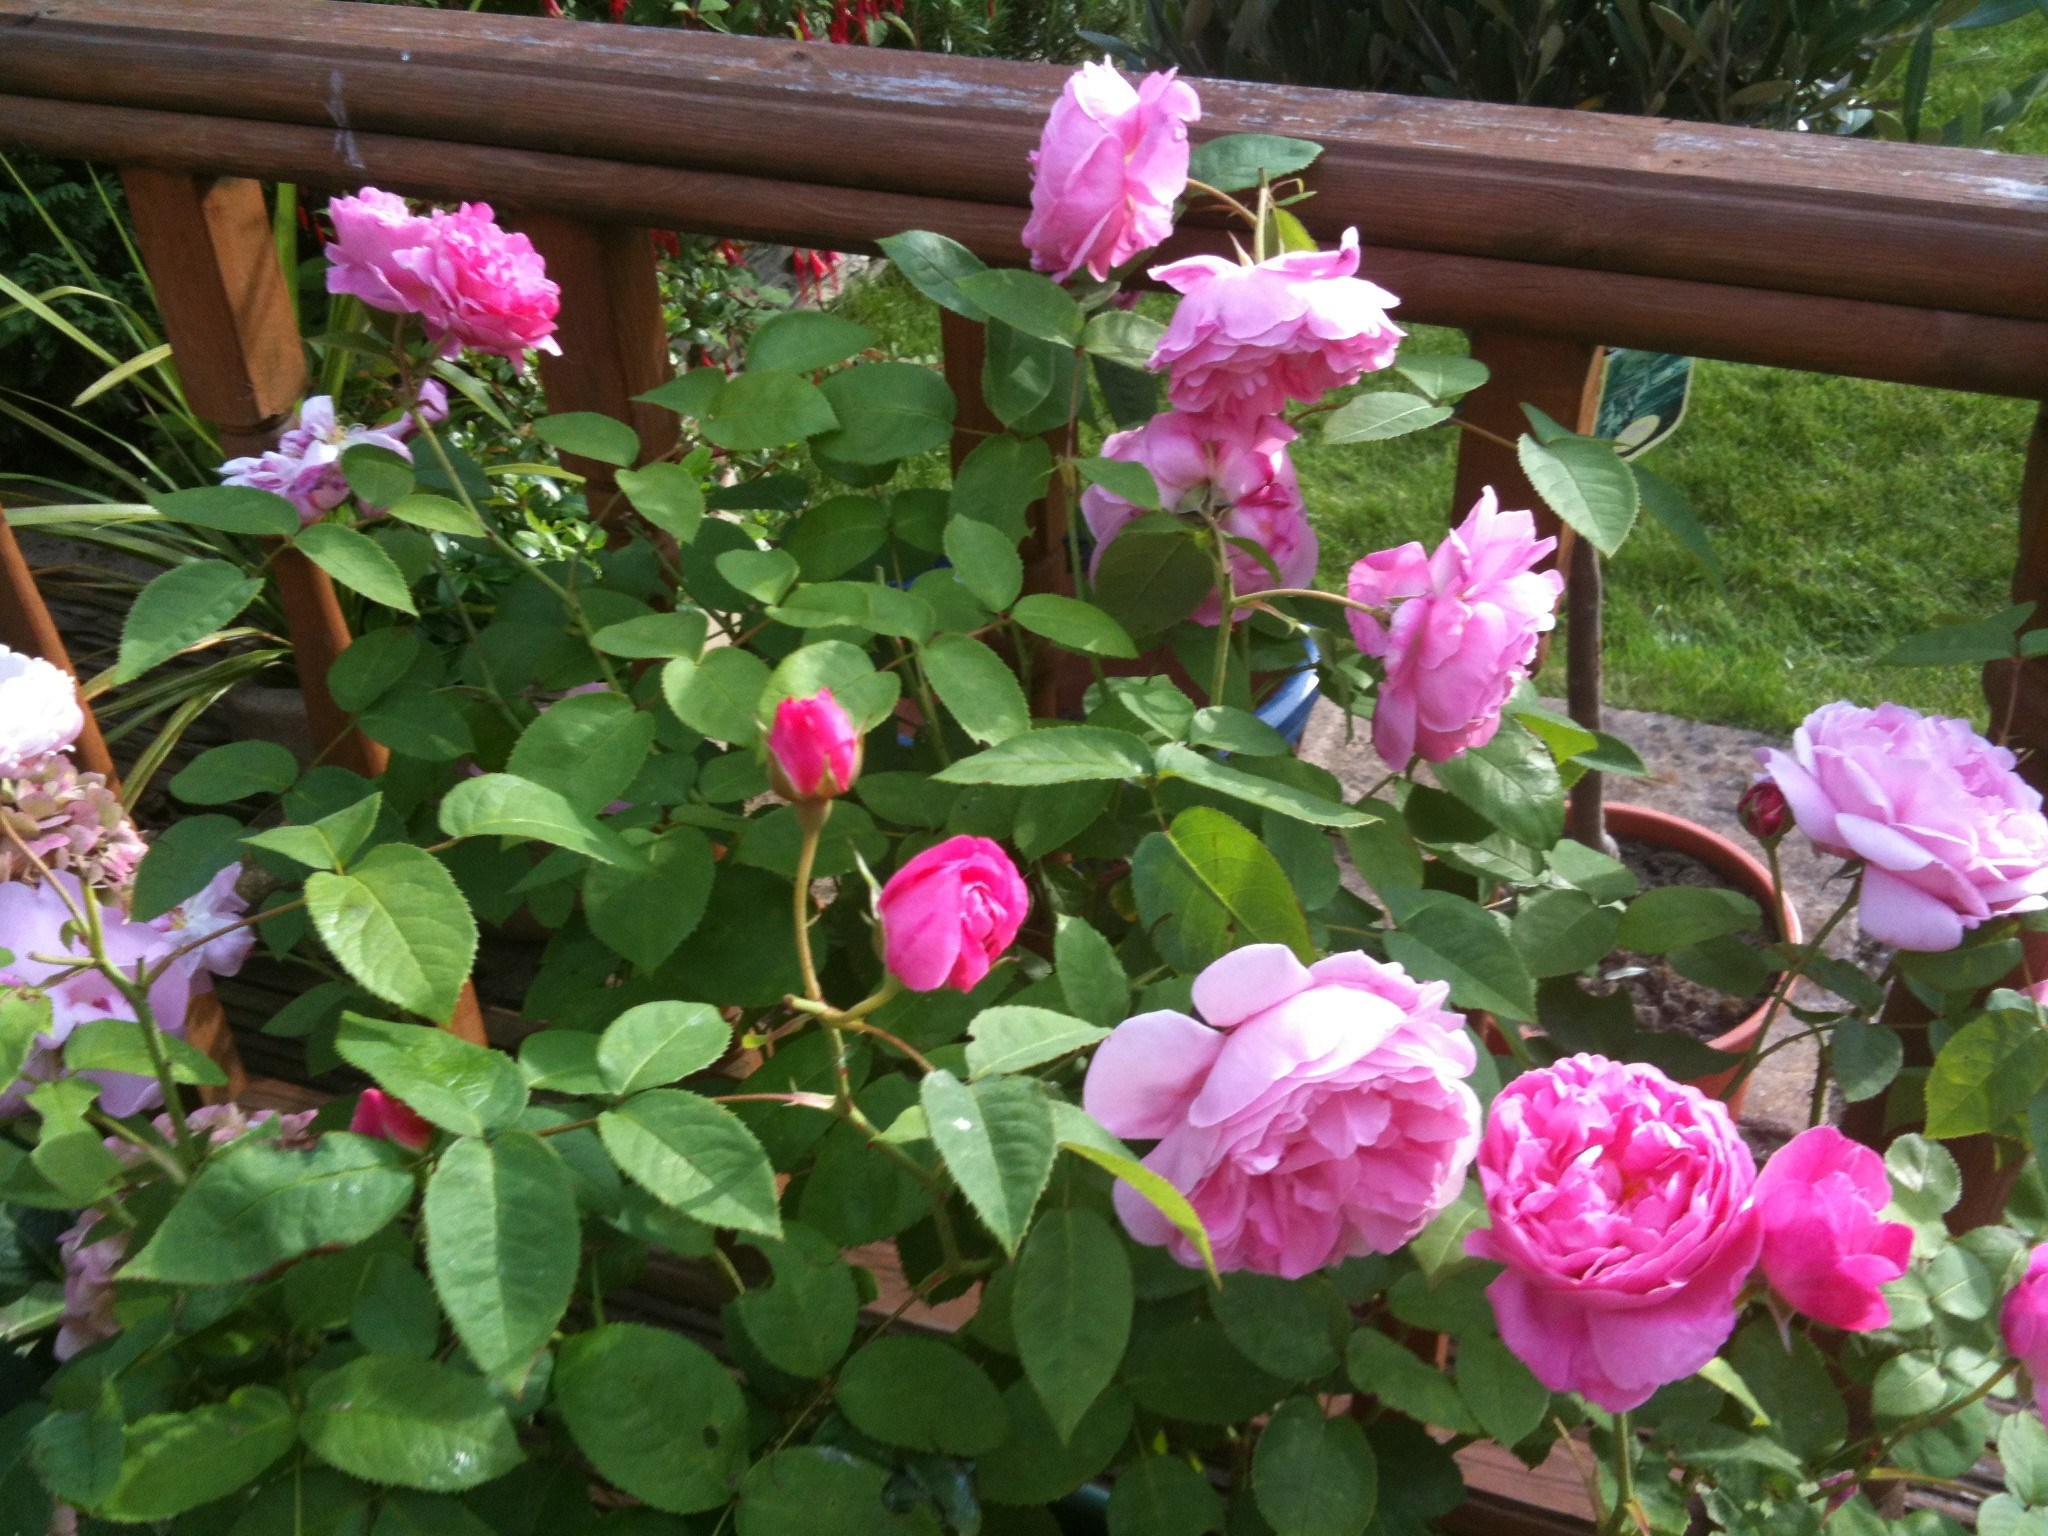 Beautiful scented David Austen rose called 'Mary Rose' which grows in my garden in memory of my Mum.